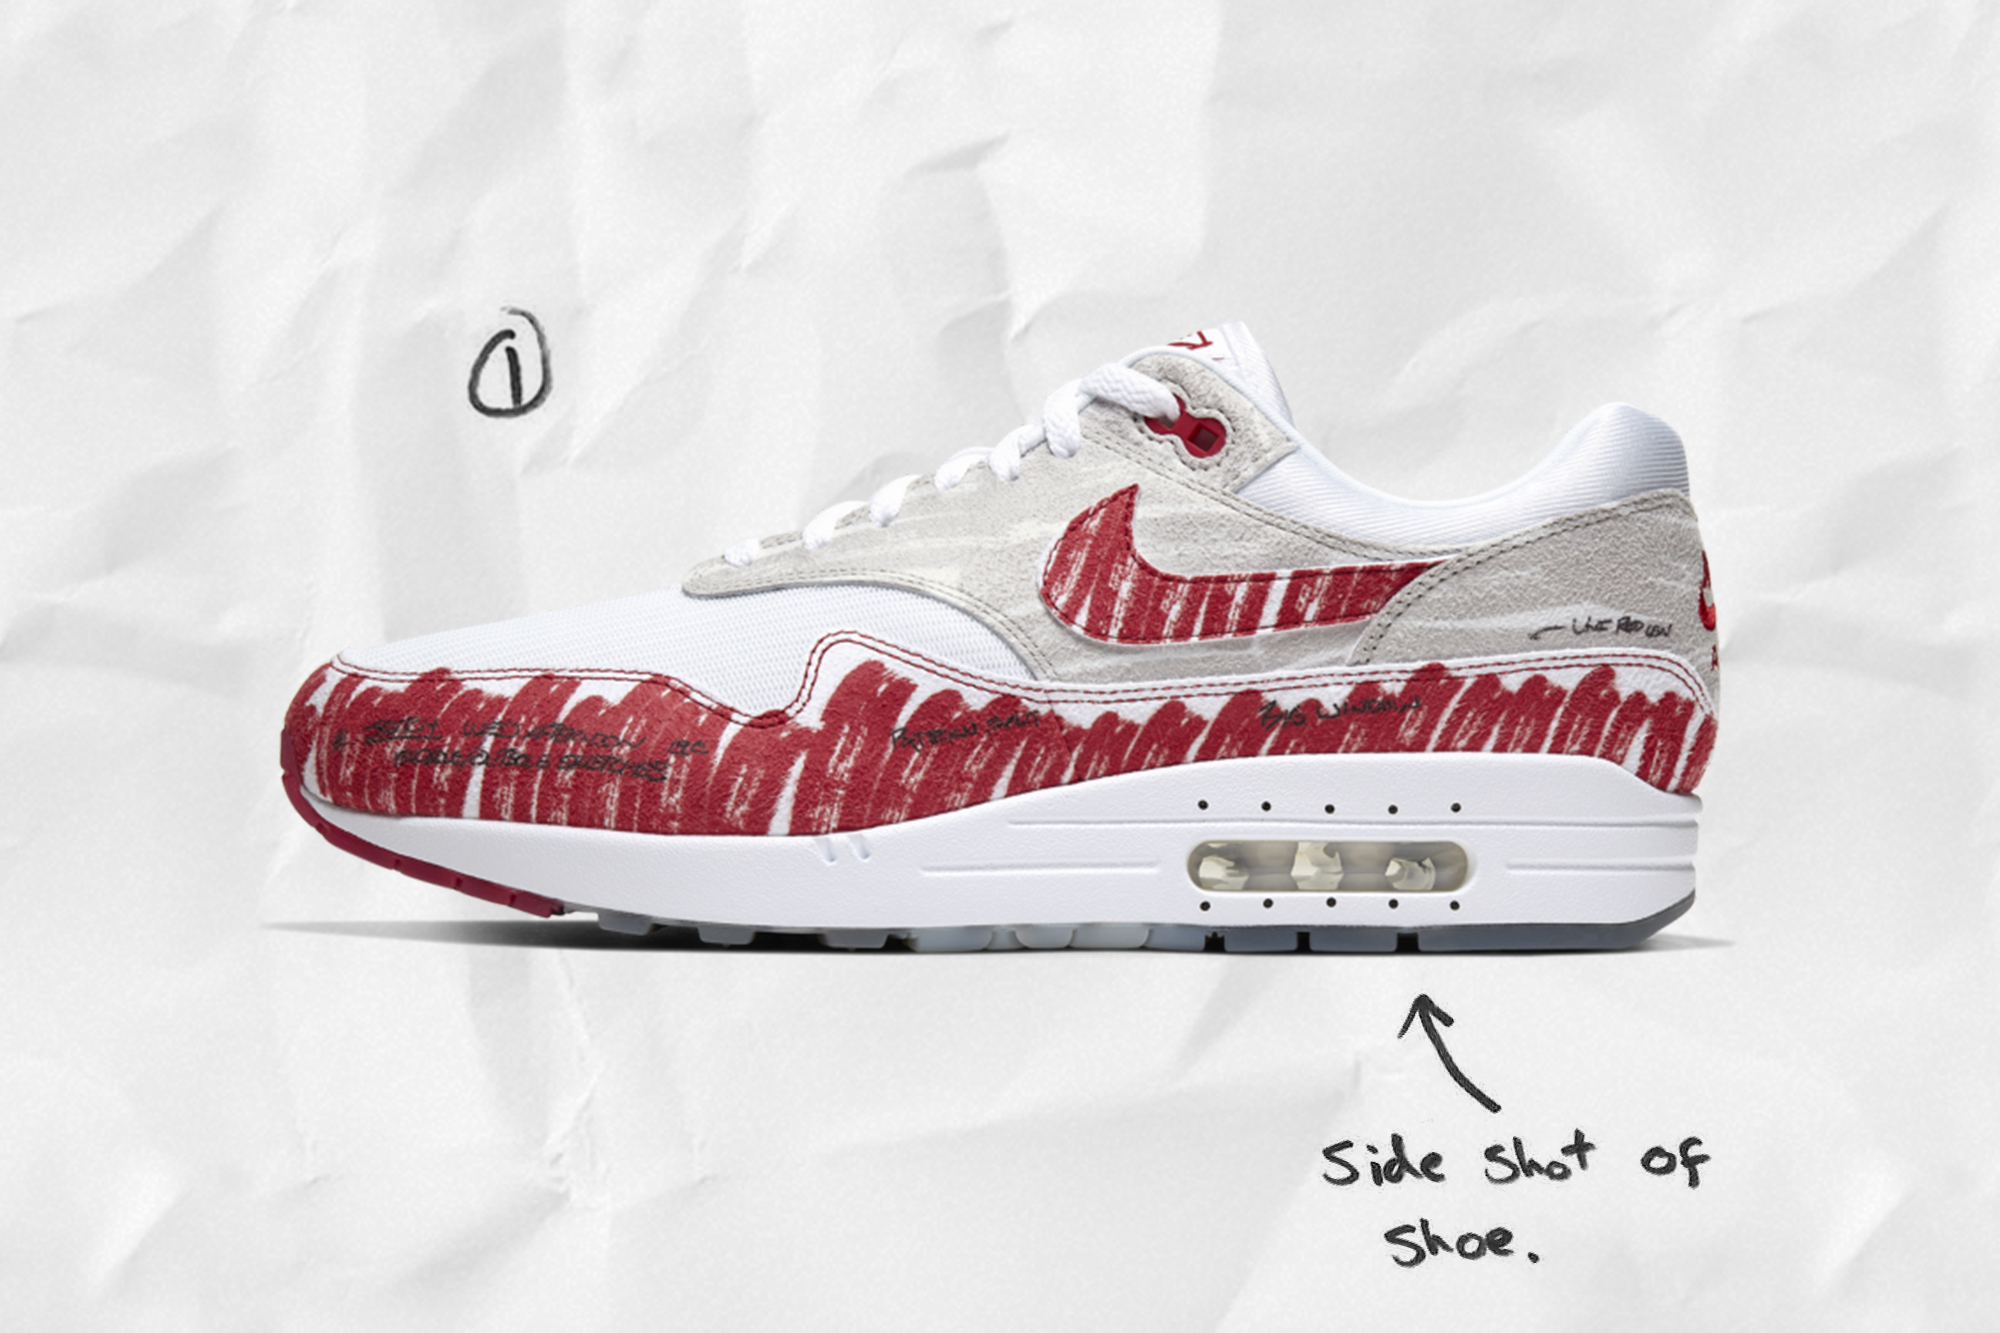 Nike Air Max 1 Tinker 'Sketch To Shelf' size? blog